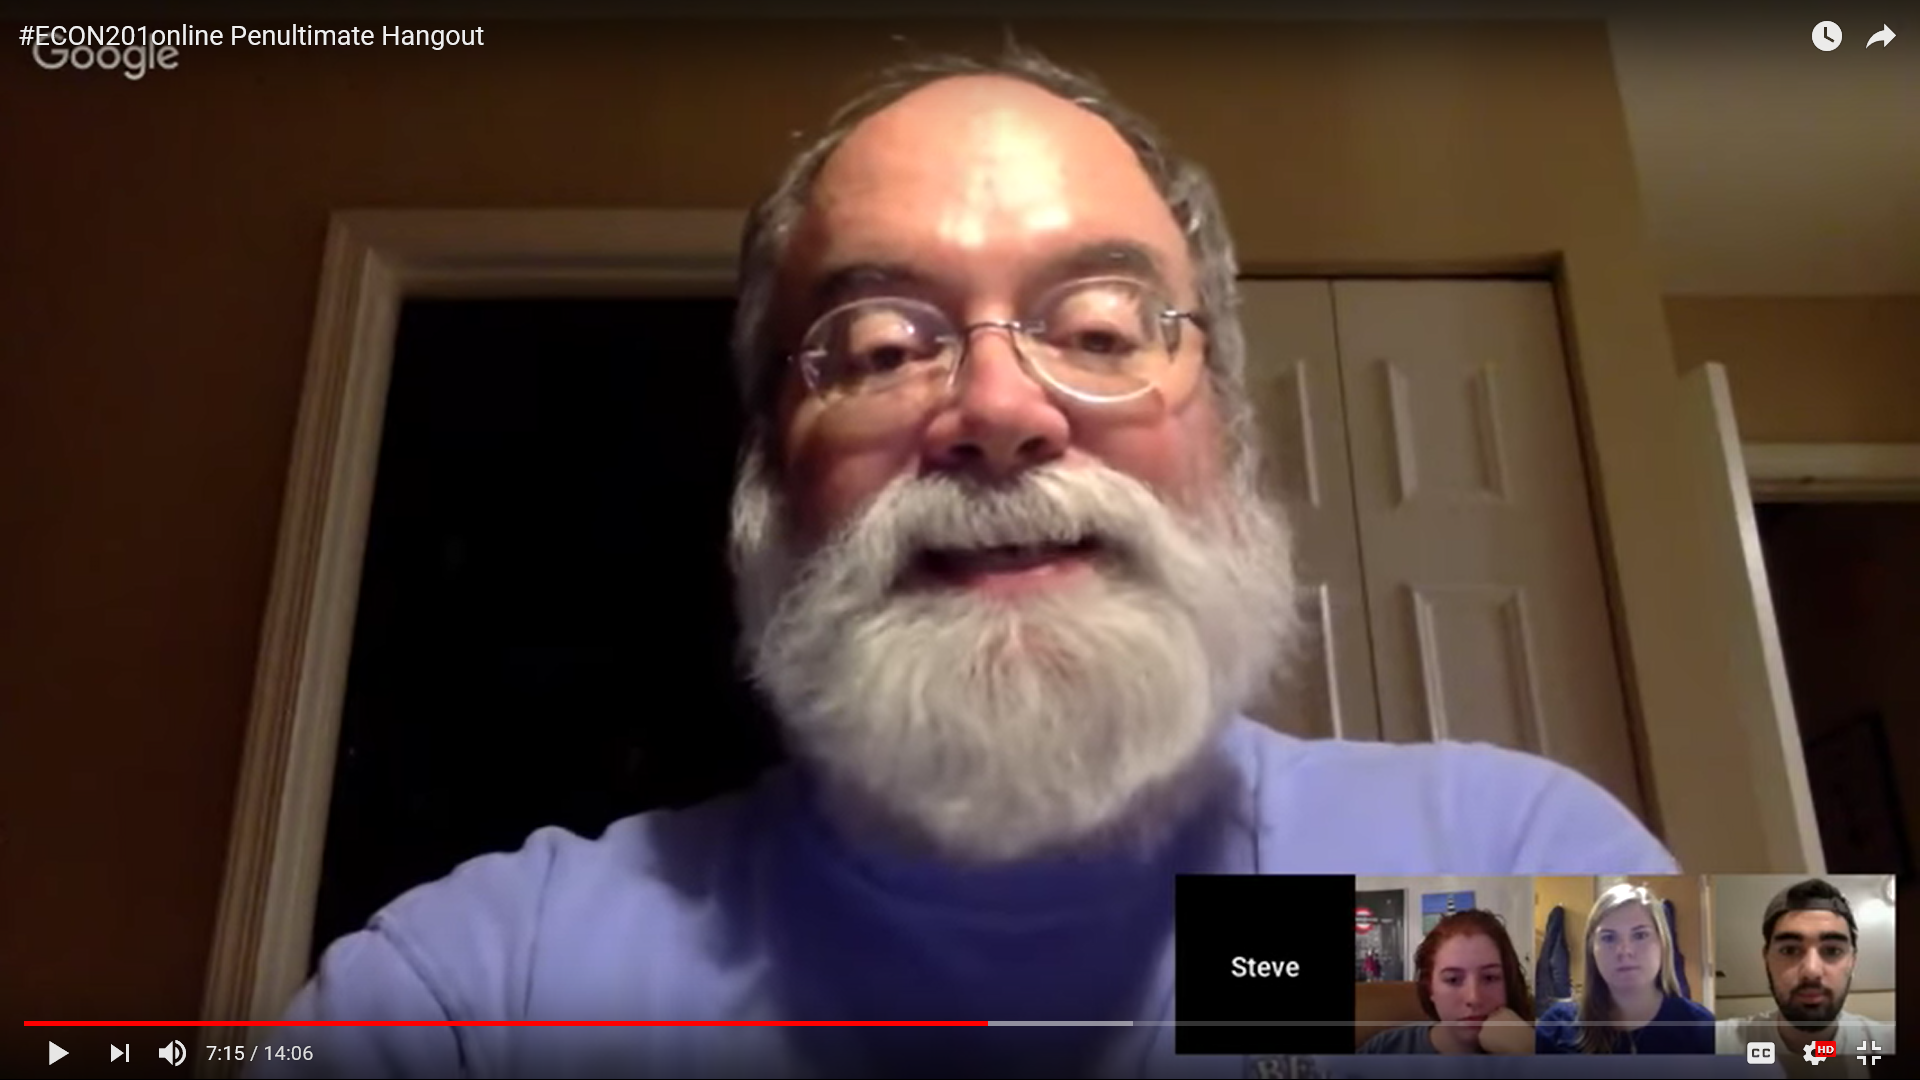 Steve Greenlaw, economics professor at the University of Mary Washington, meets with students on Skype and Google Hangout to advise them on group projects